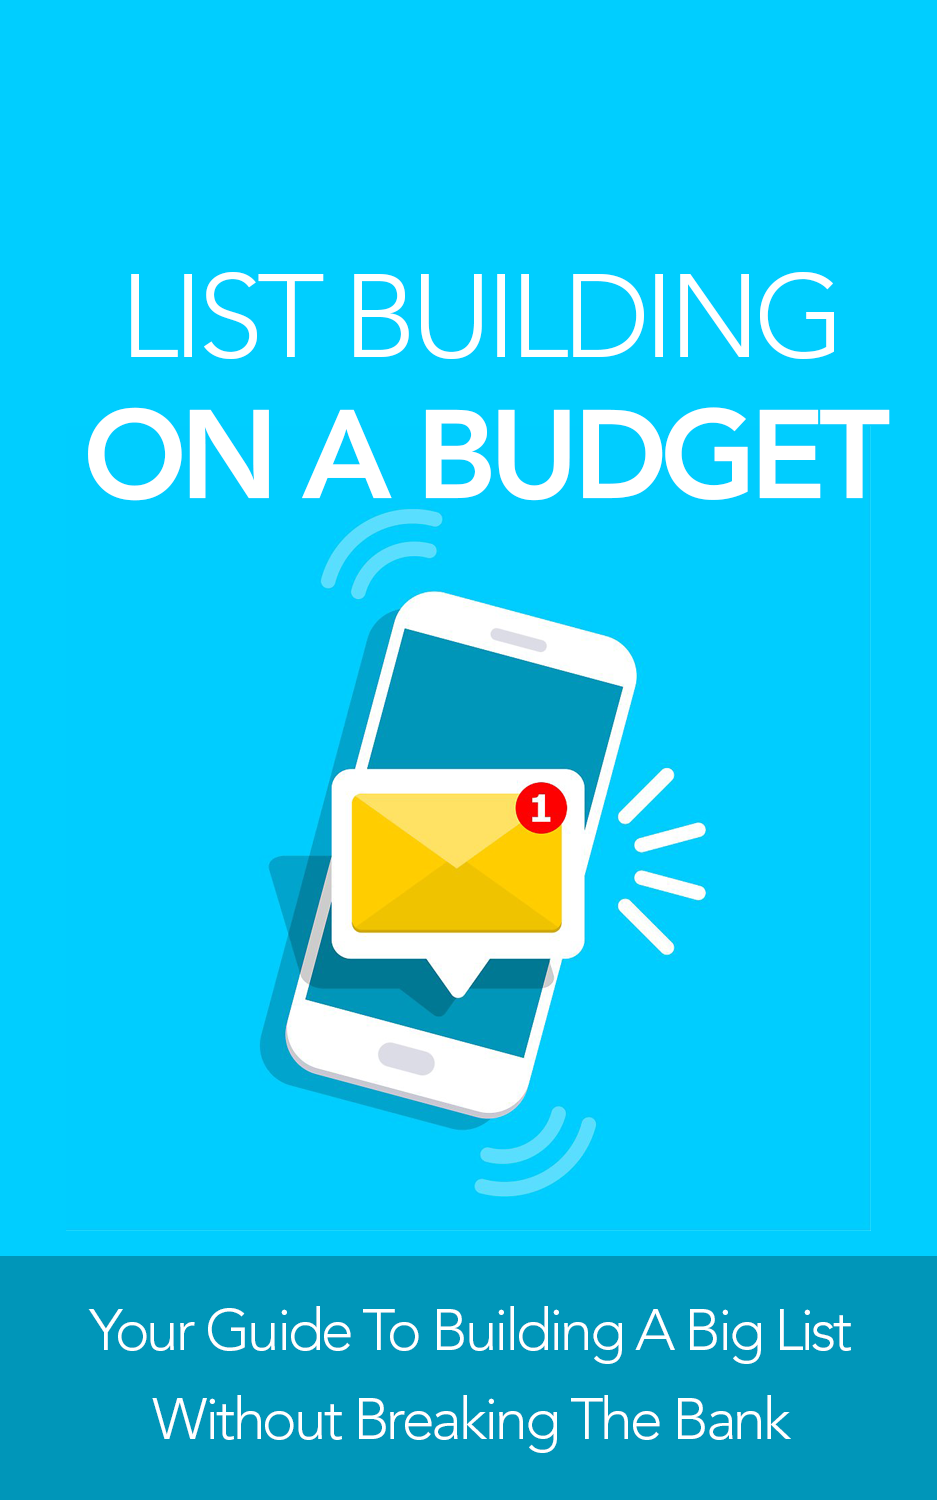 List Building On A Budget (Your Guide To Building A Big List Without Breaking The Bank) Ebook's Ebook Image